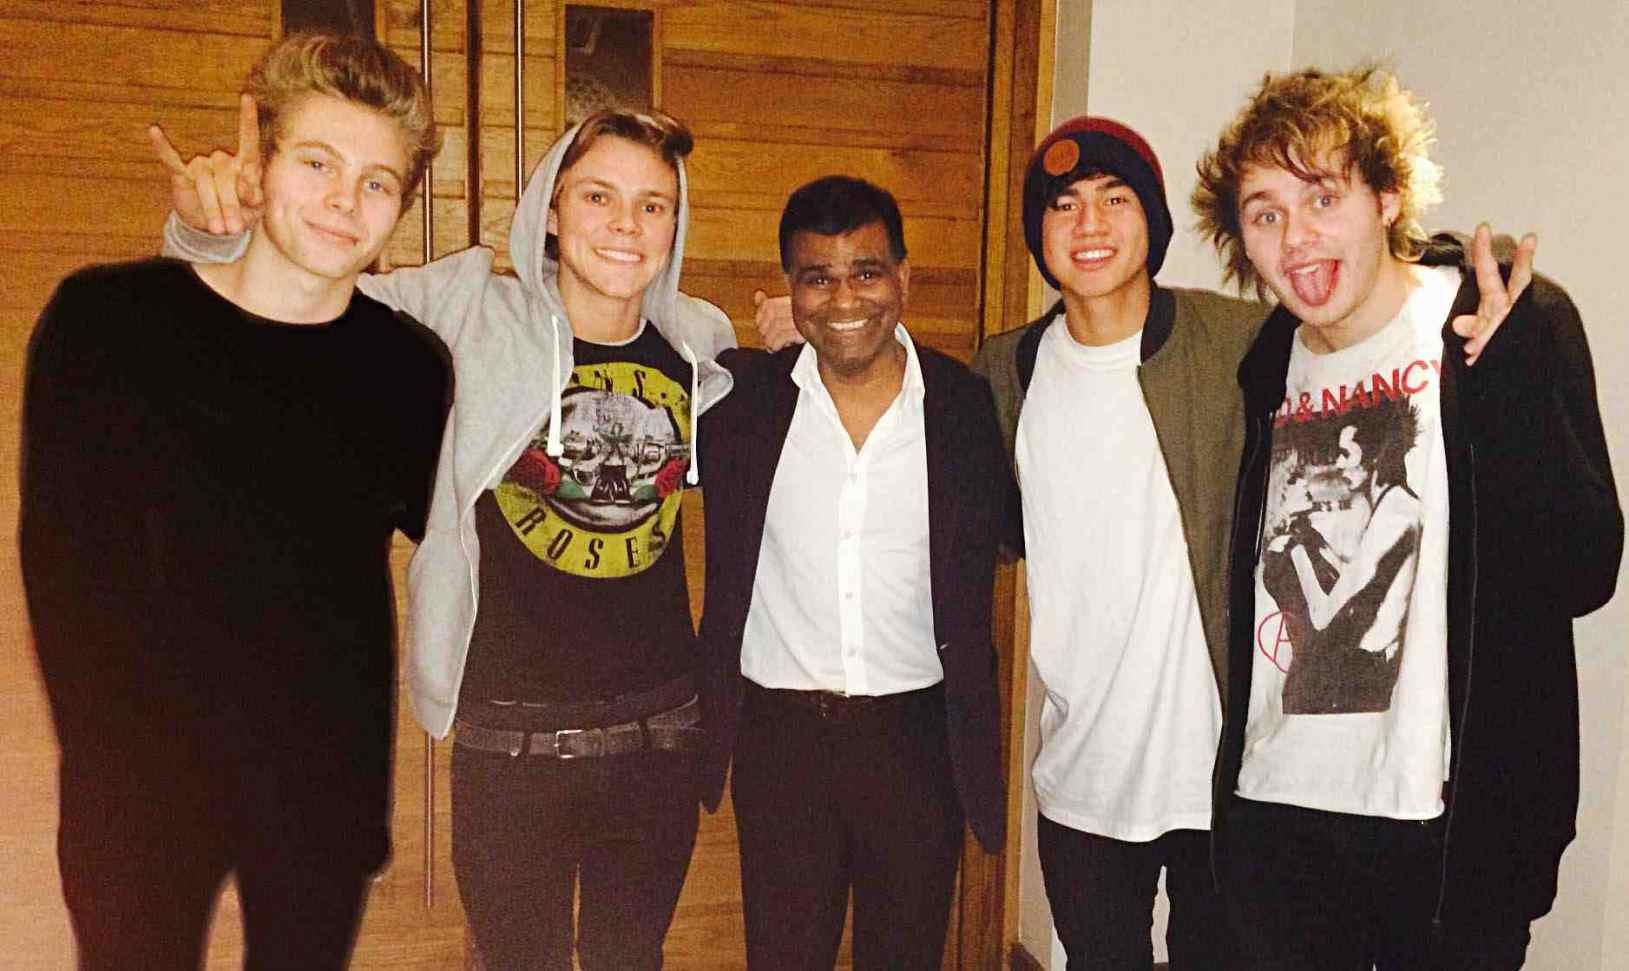 5 Seconds of Summer with Raval manager Avi Malik